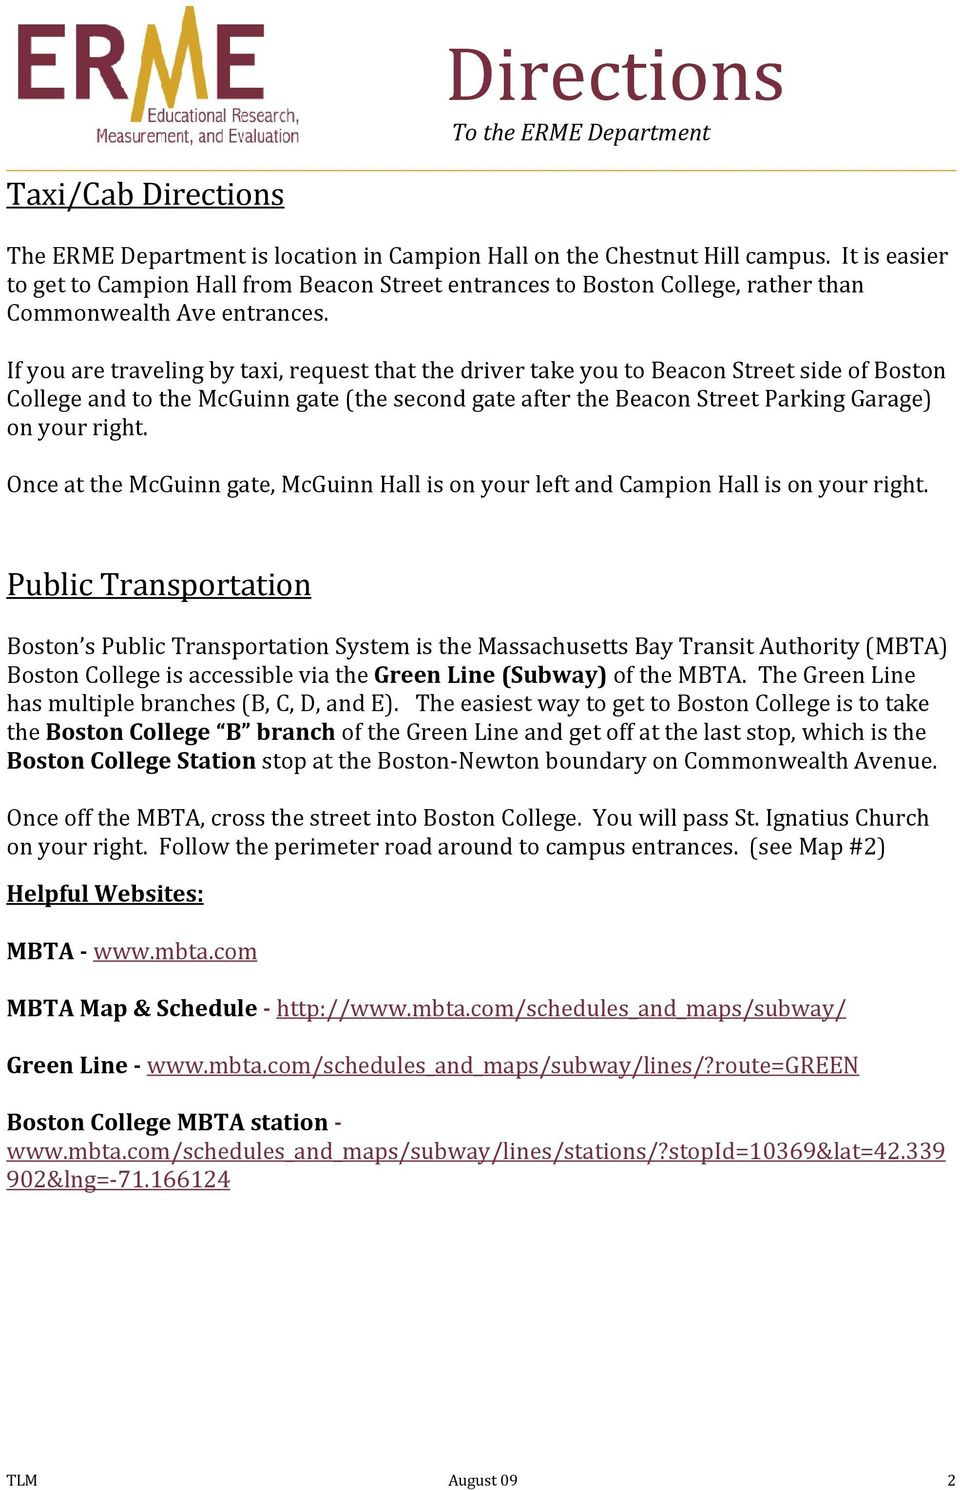 If you are traveling by taxi, request that the driver take you to Beacon Street side of Boston College and to the McGuinn gate (the second gate after the Beacon Street Parking Garage) on your right.